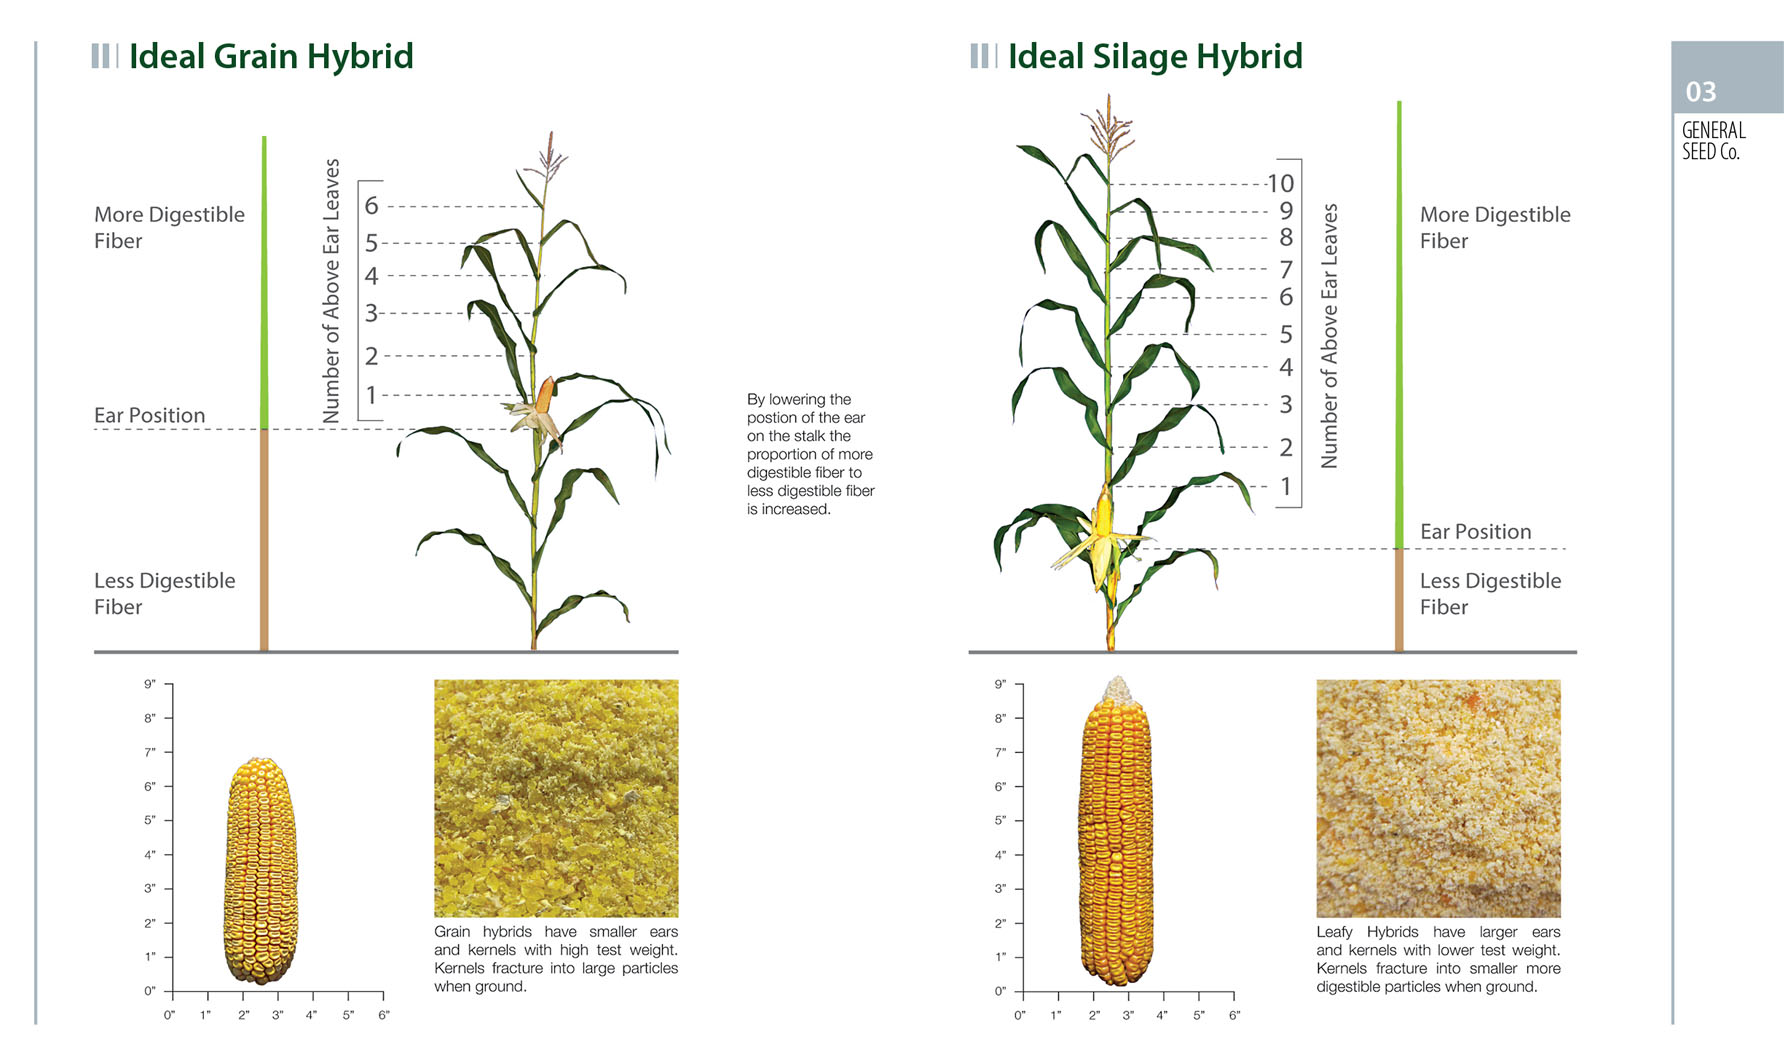 GSL Silage Hybrid general seed company